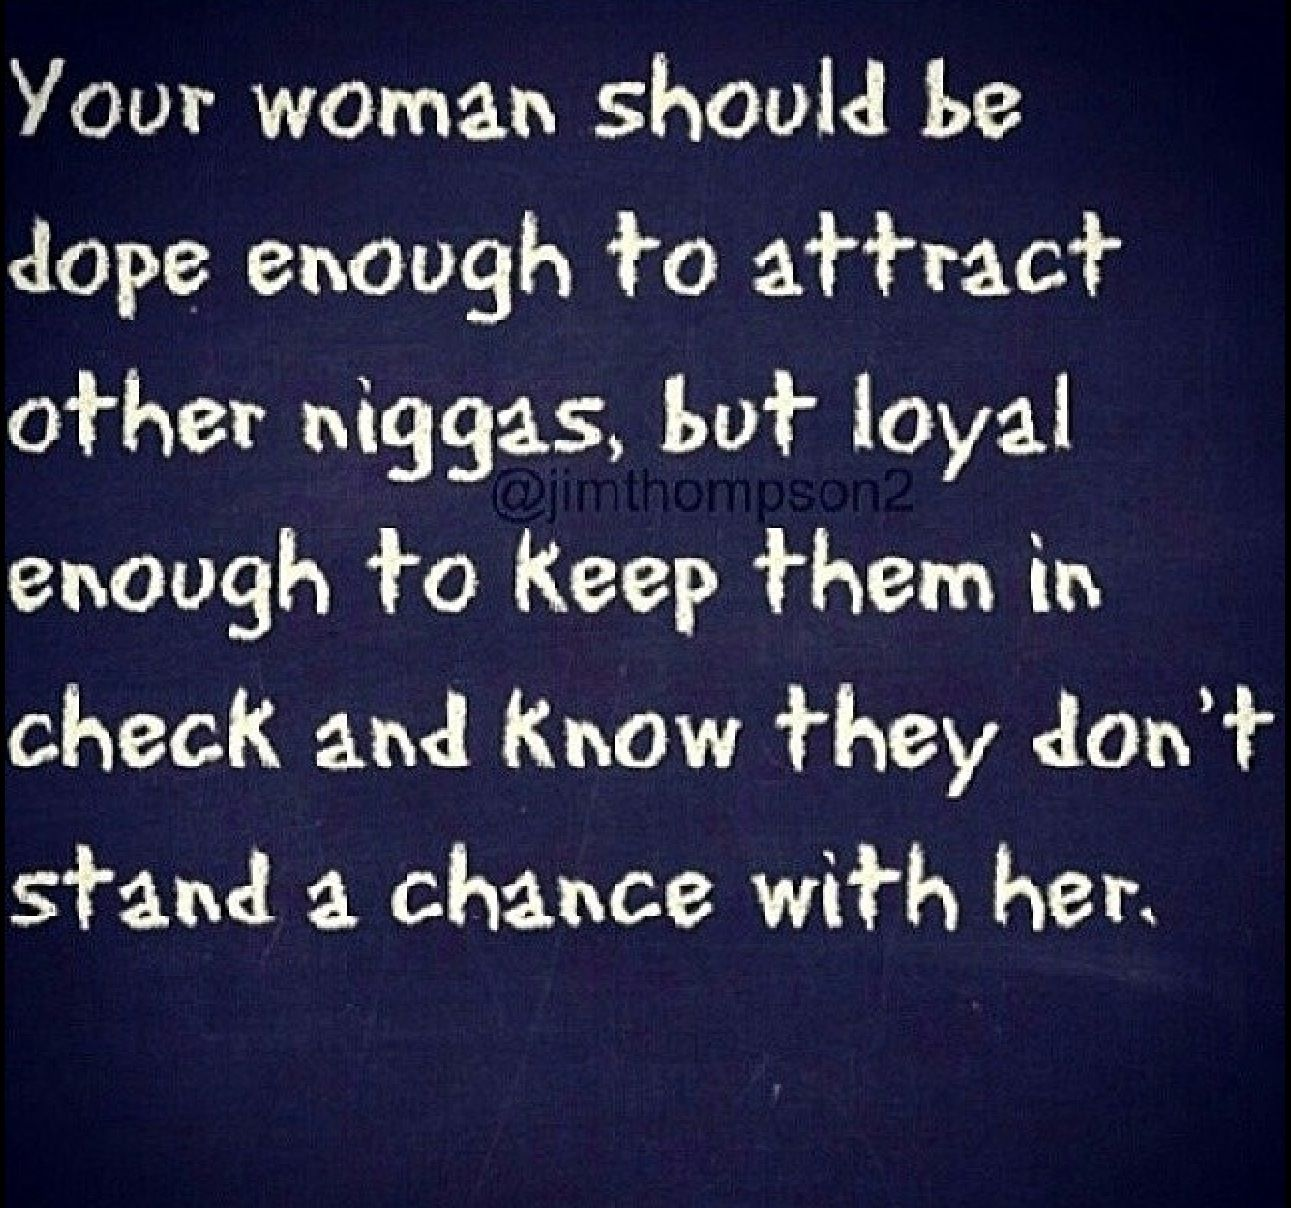 "Your Woman Should BÄ"" Dope Enough To Attract Other Niggas But Loyal Enough To Keep"